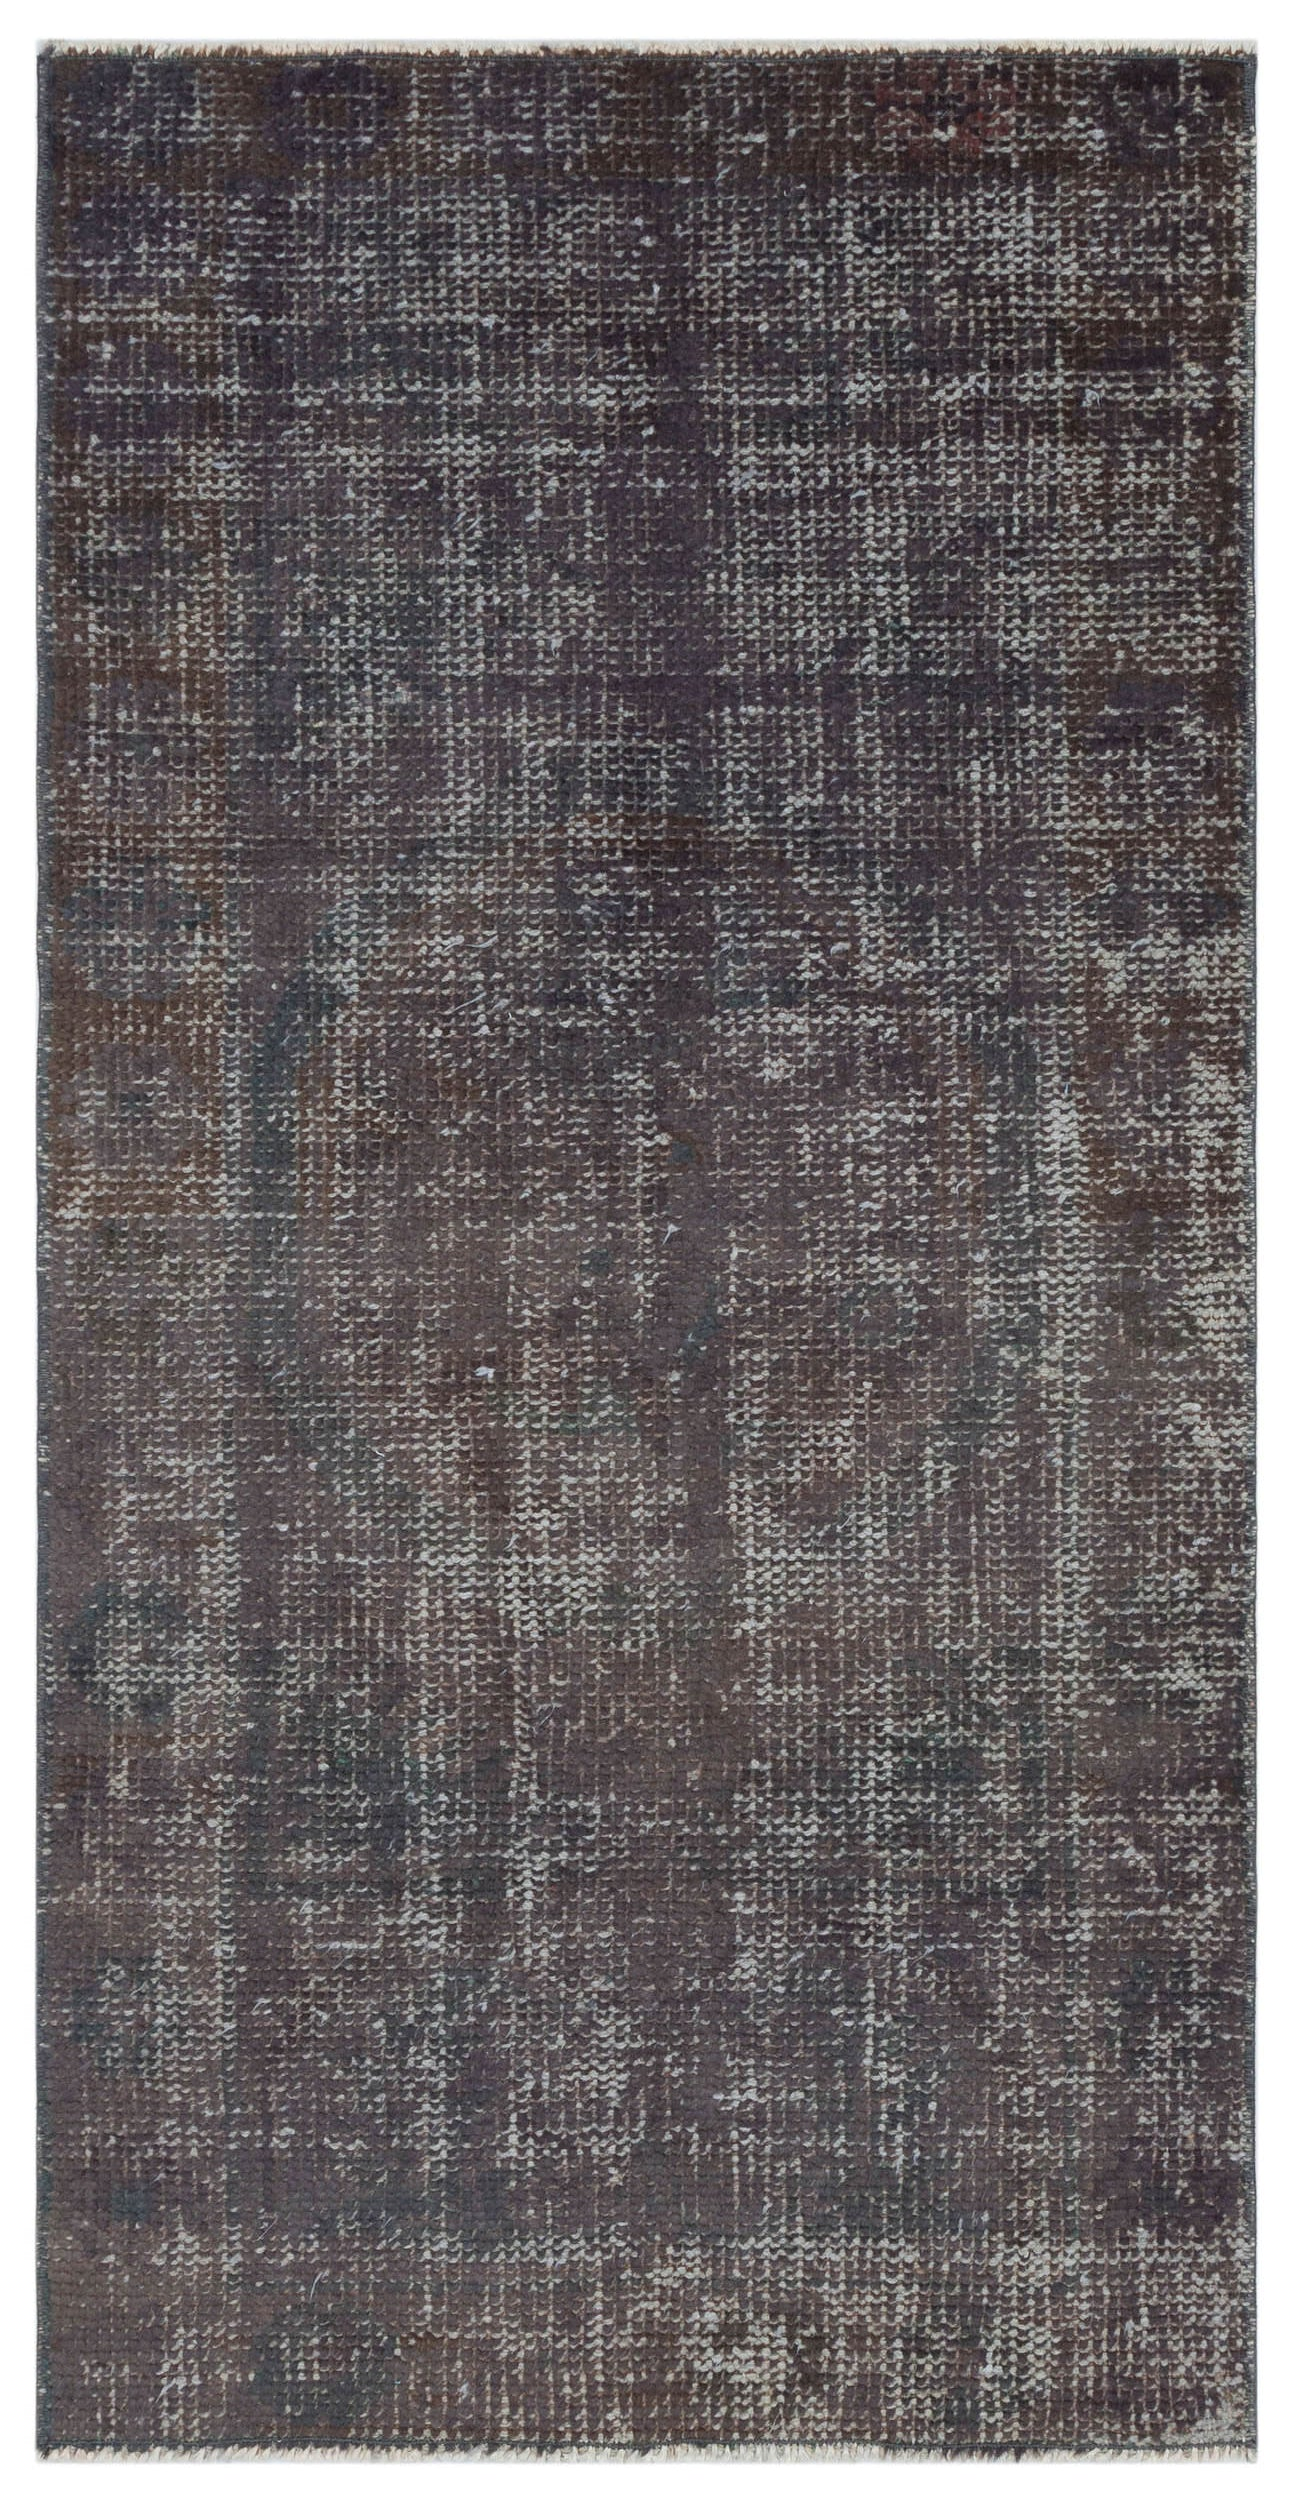 Gray Over Dyed Vintage Rug 2'6'' x 4'10'' ft 75 x 148 cm